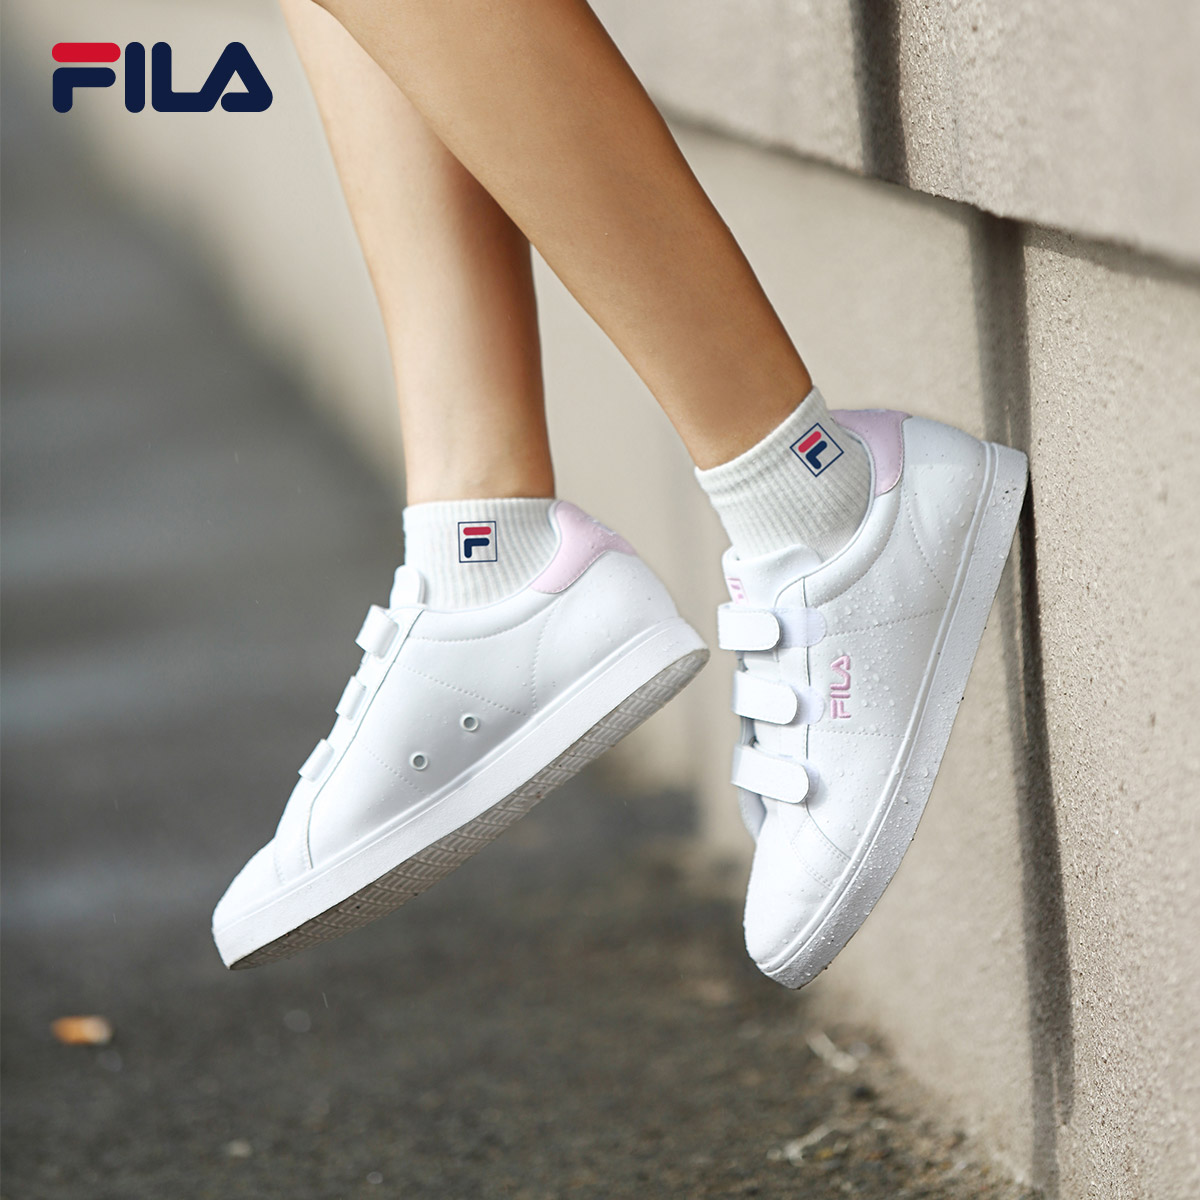 FILA Fei Le shoes 2018 spring new solid color small white shoes casual  breathable Velcro culture casual shoes c500ee8e7